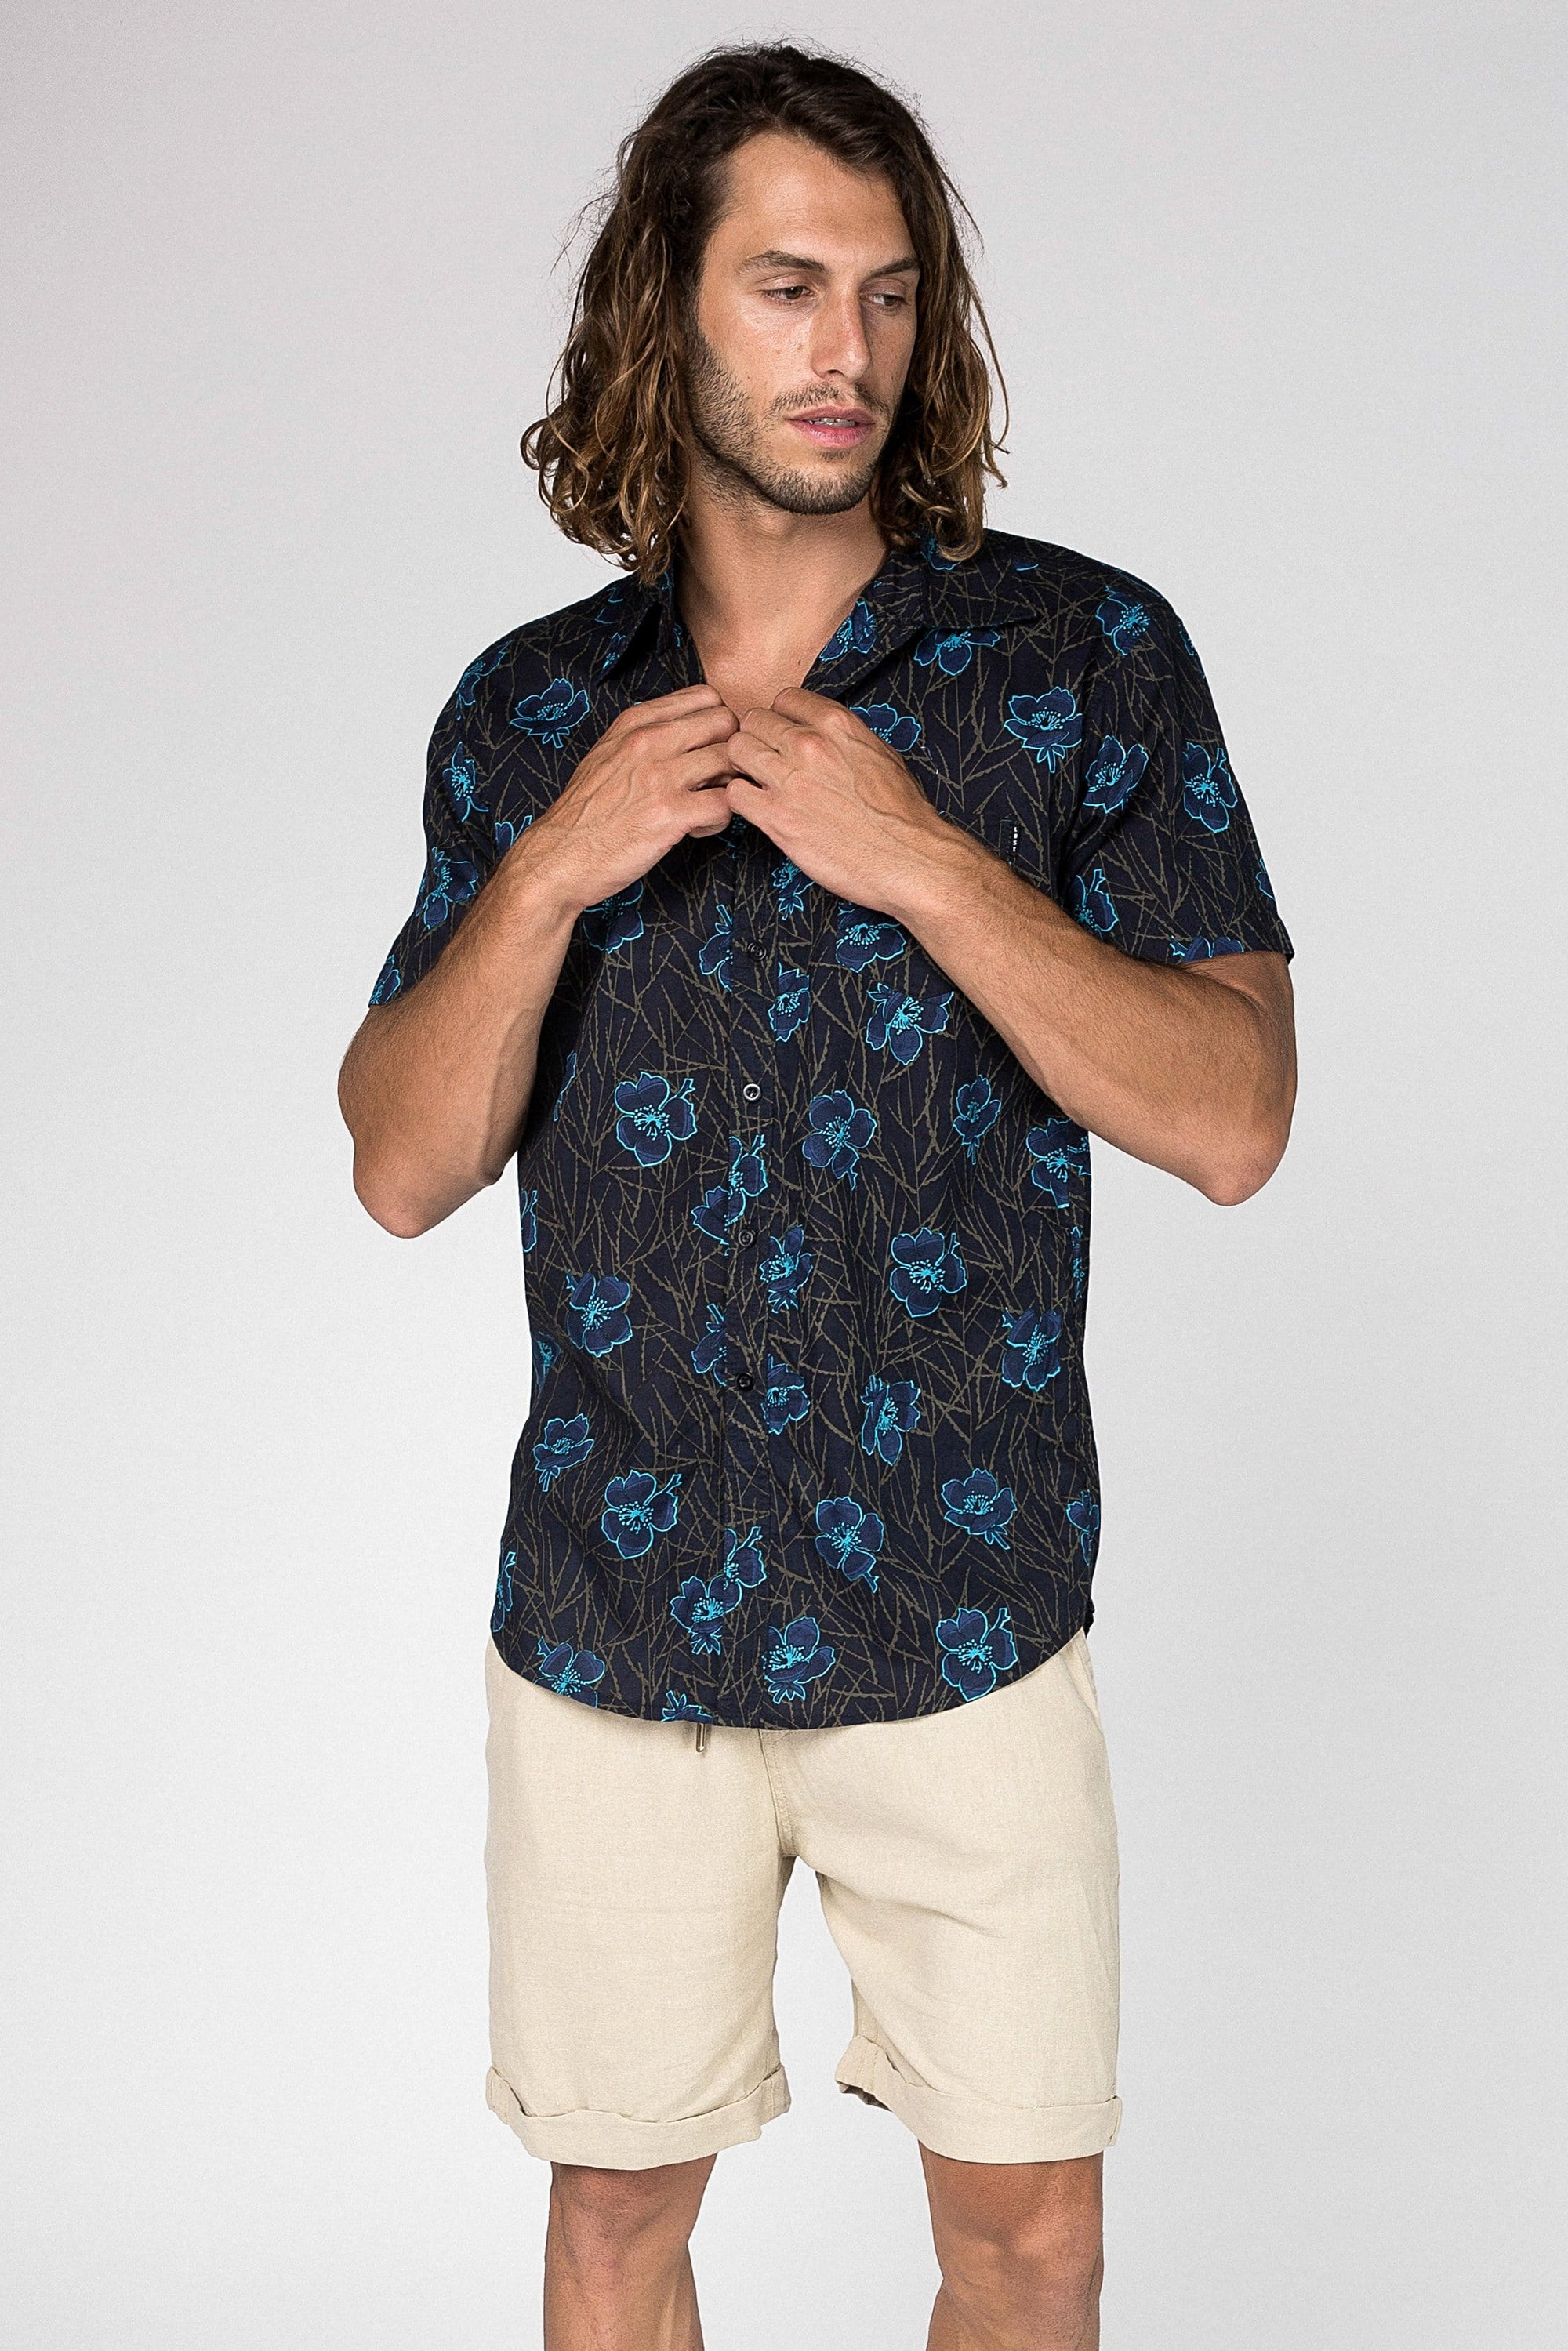 Electric Bloom Shirt - Man Shirt - LOST IN PARADISE